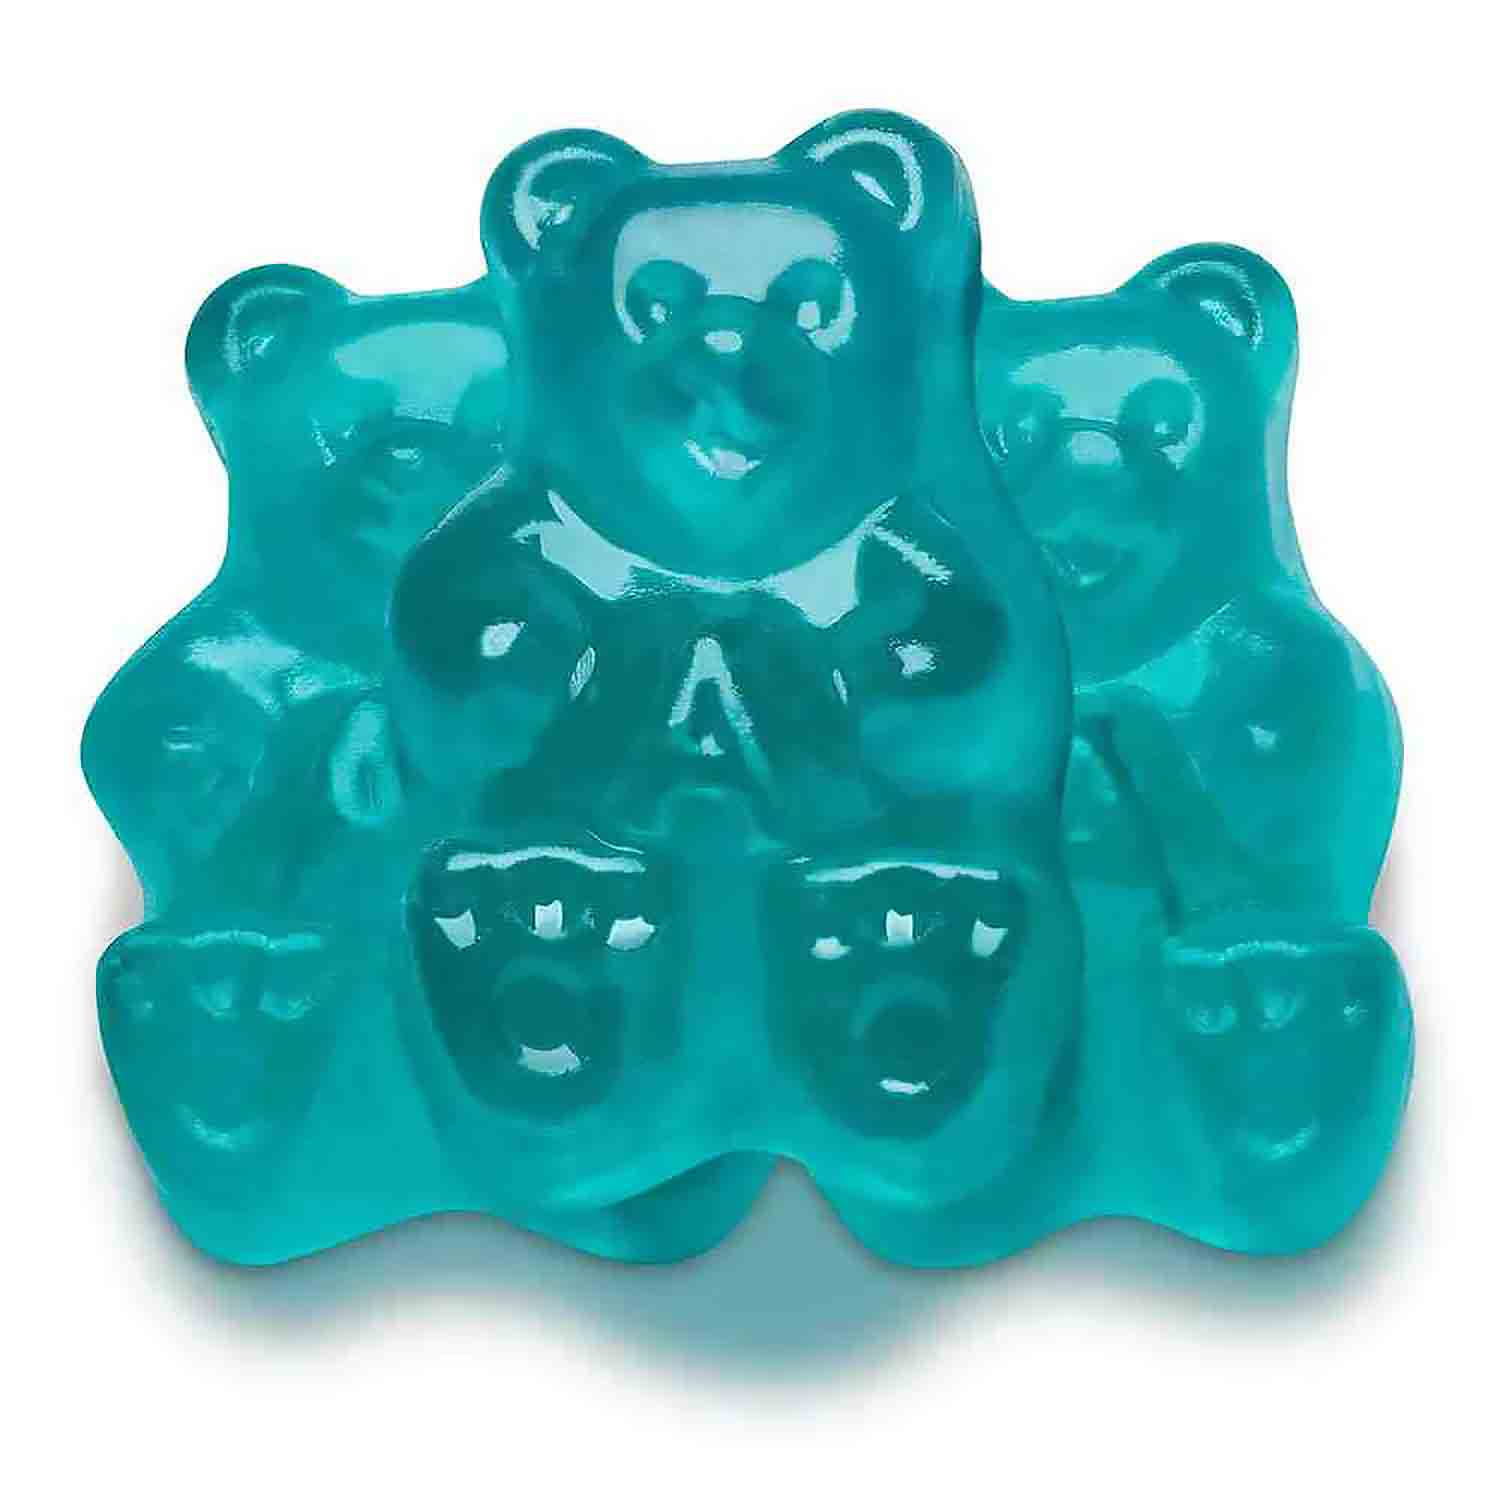 Blue Watermelon Gummi Bears